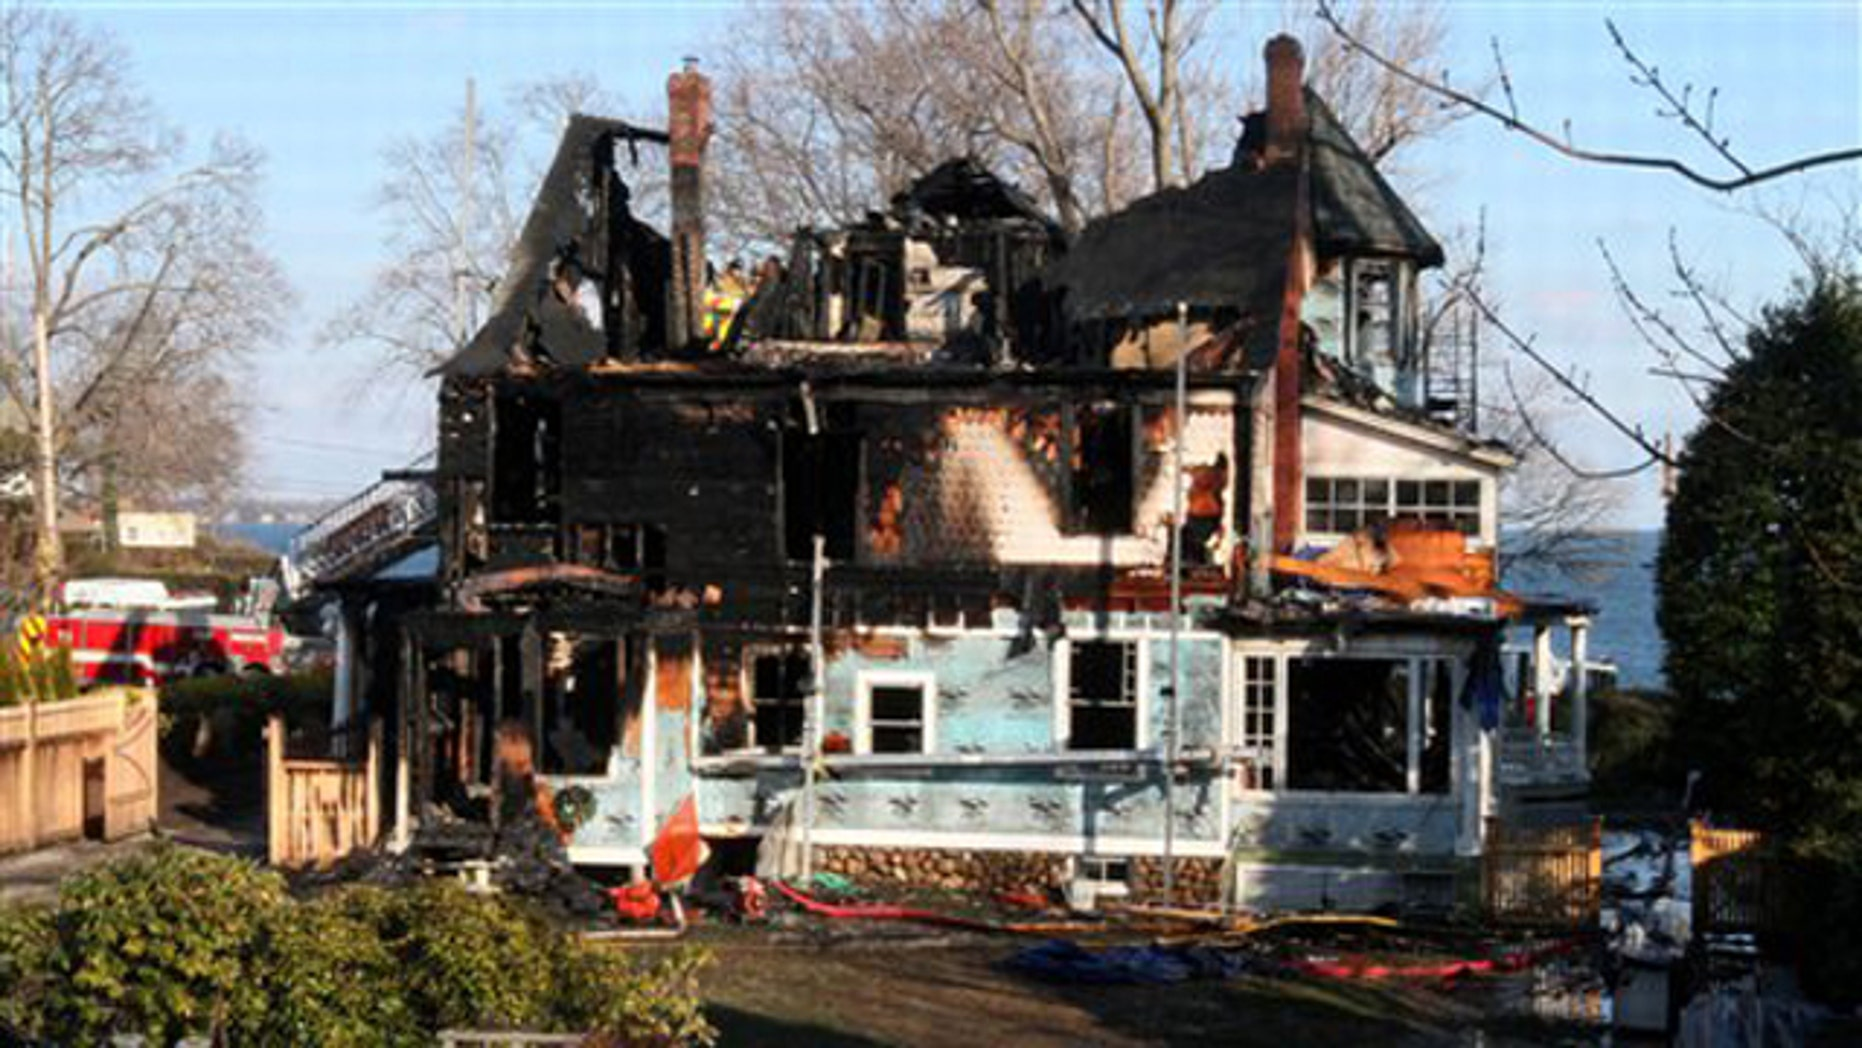 Dec. 25, 2011: In this file photo, firefighters investigate a house where an early morning fire left five people dead, in Stamford, Conn.